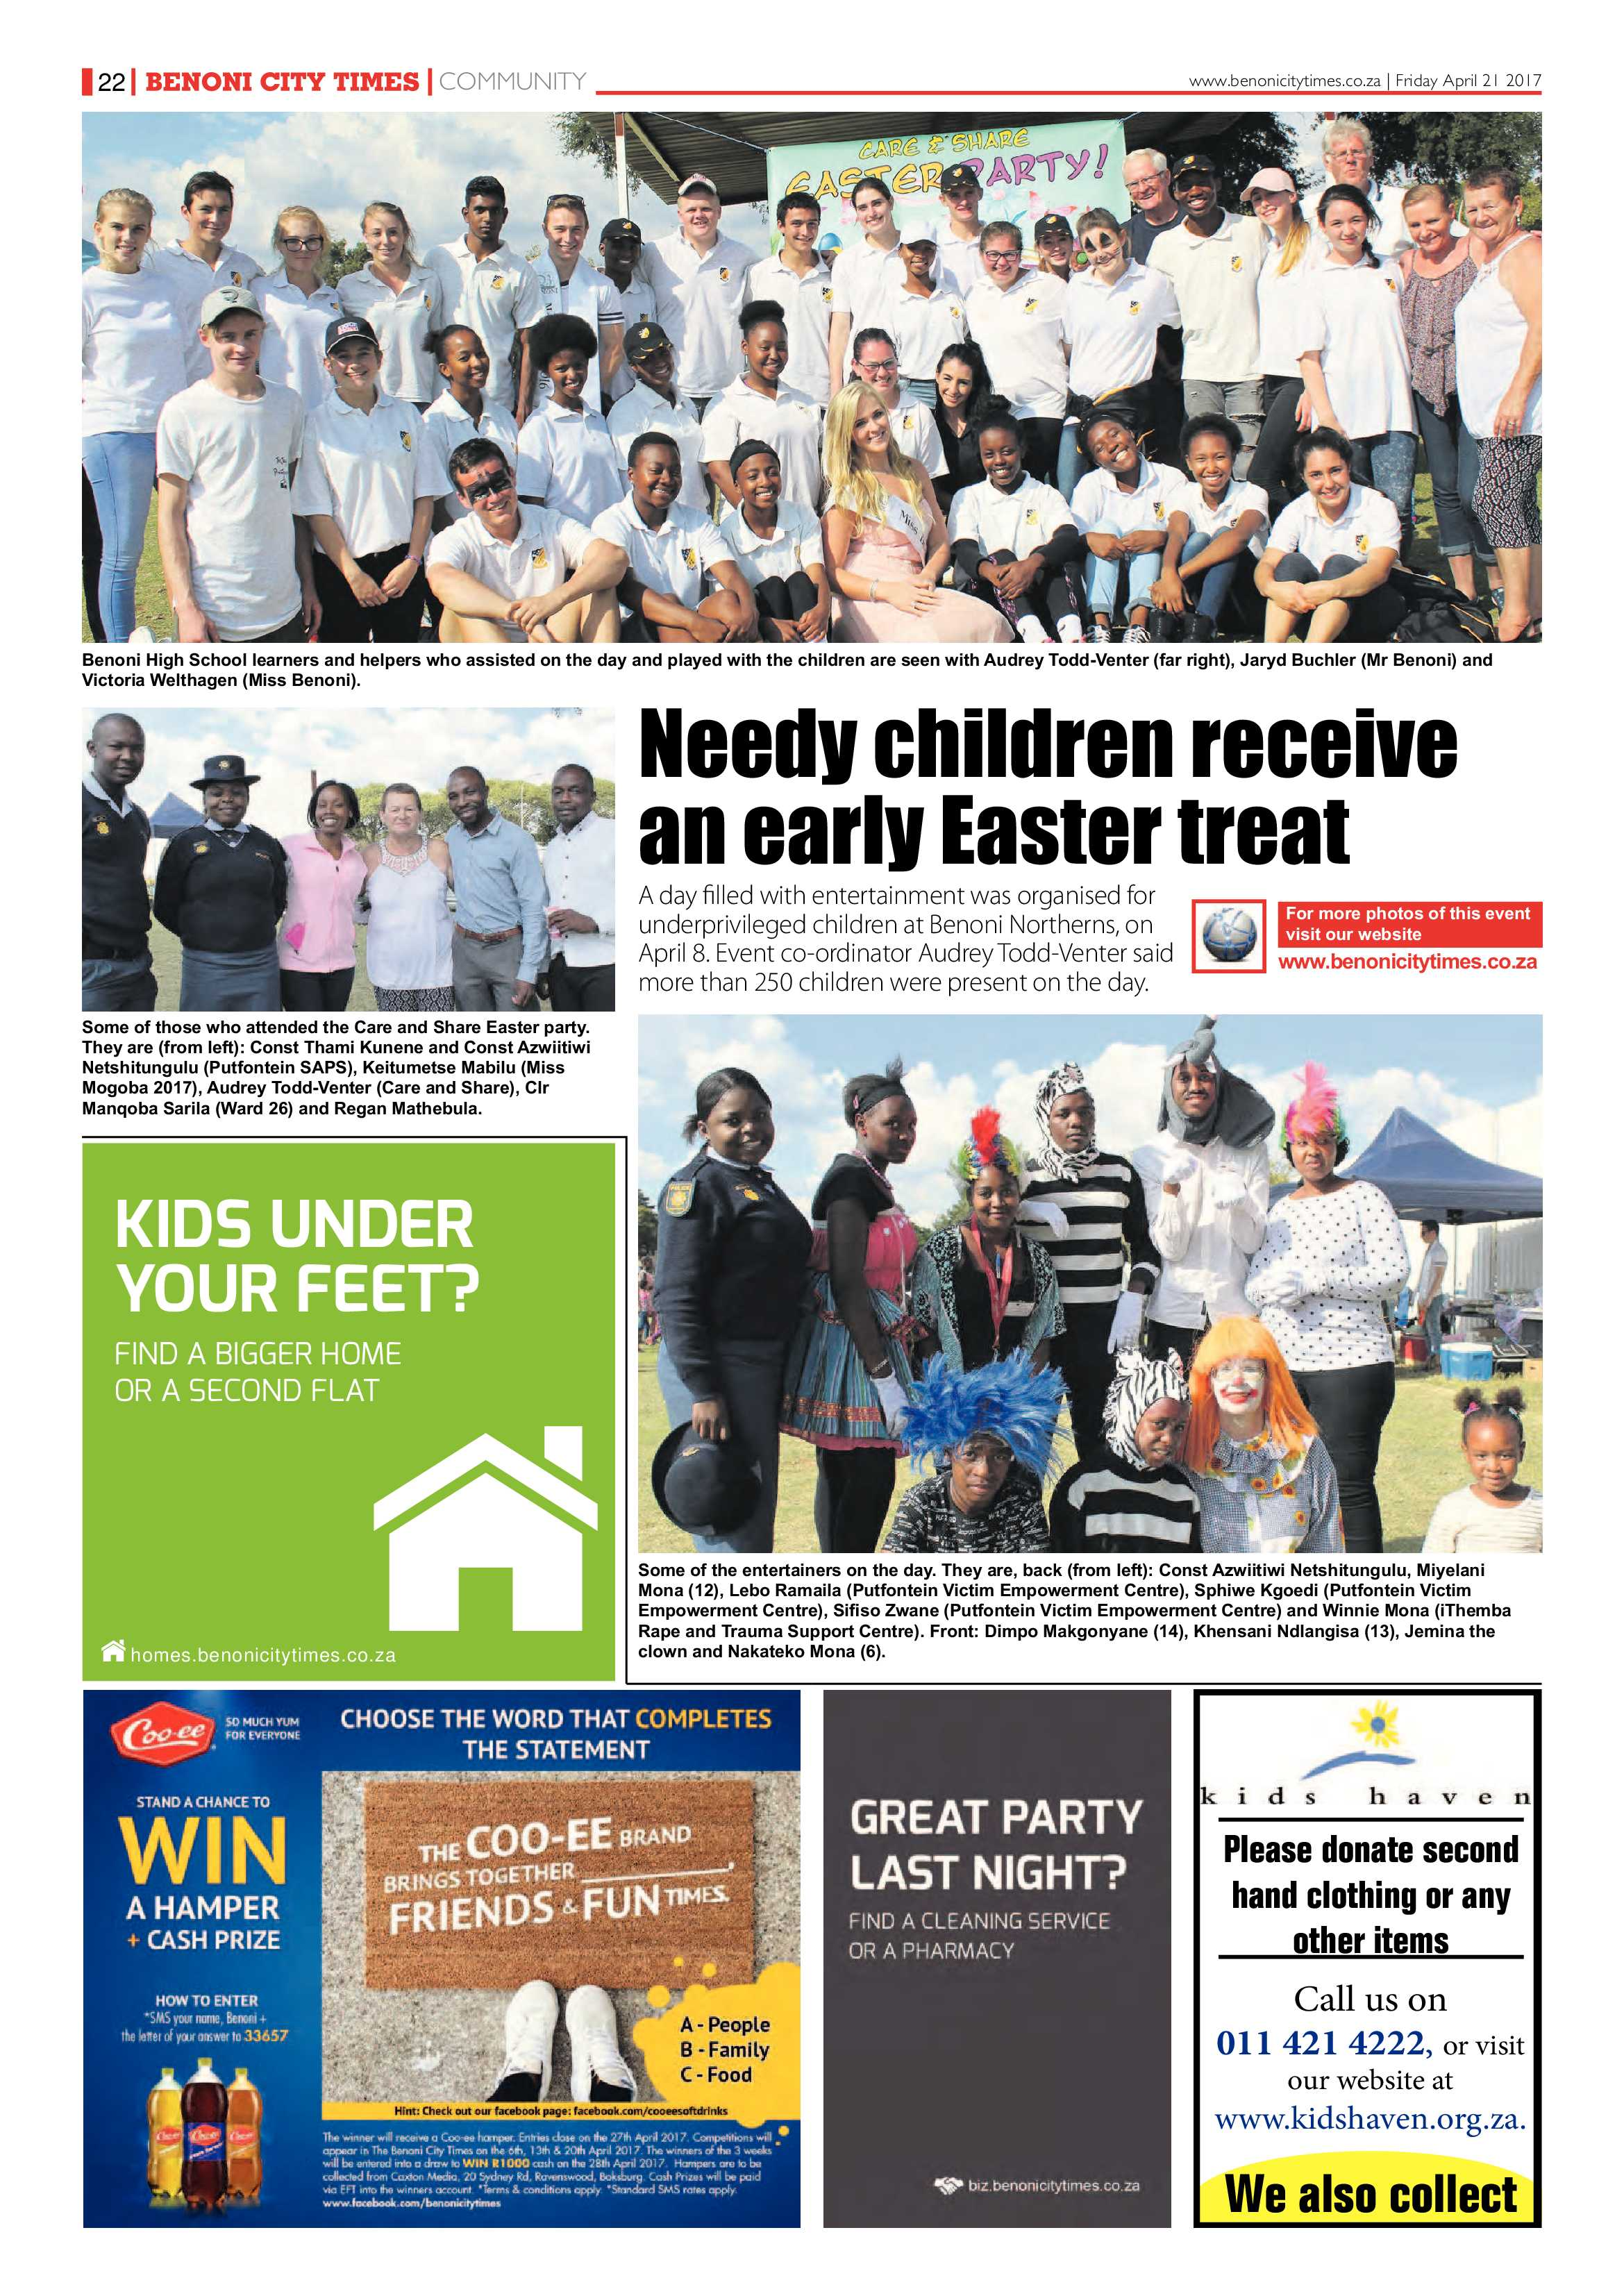 benoni-city-times-20-april-2017-epapers-page-22